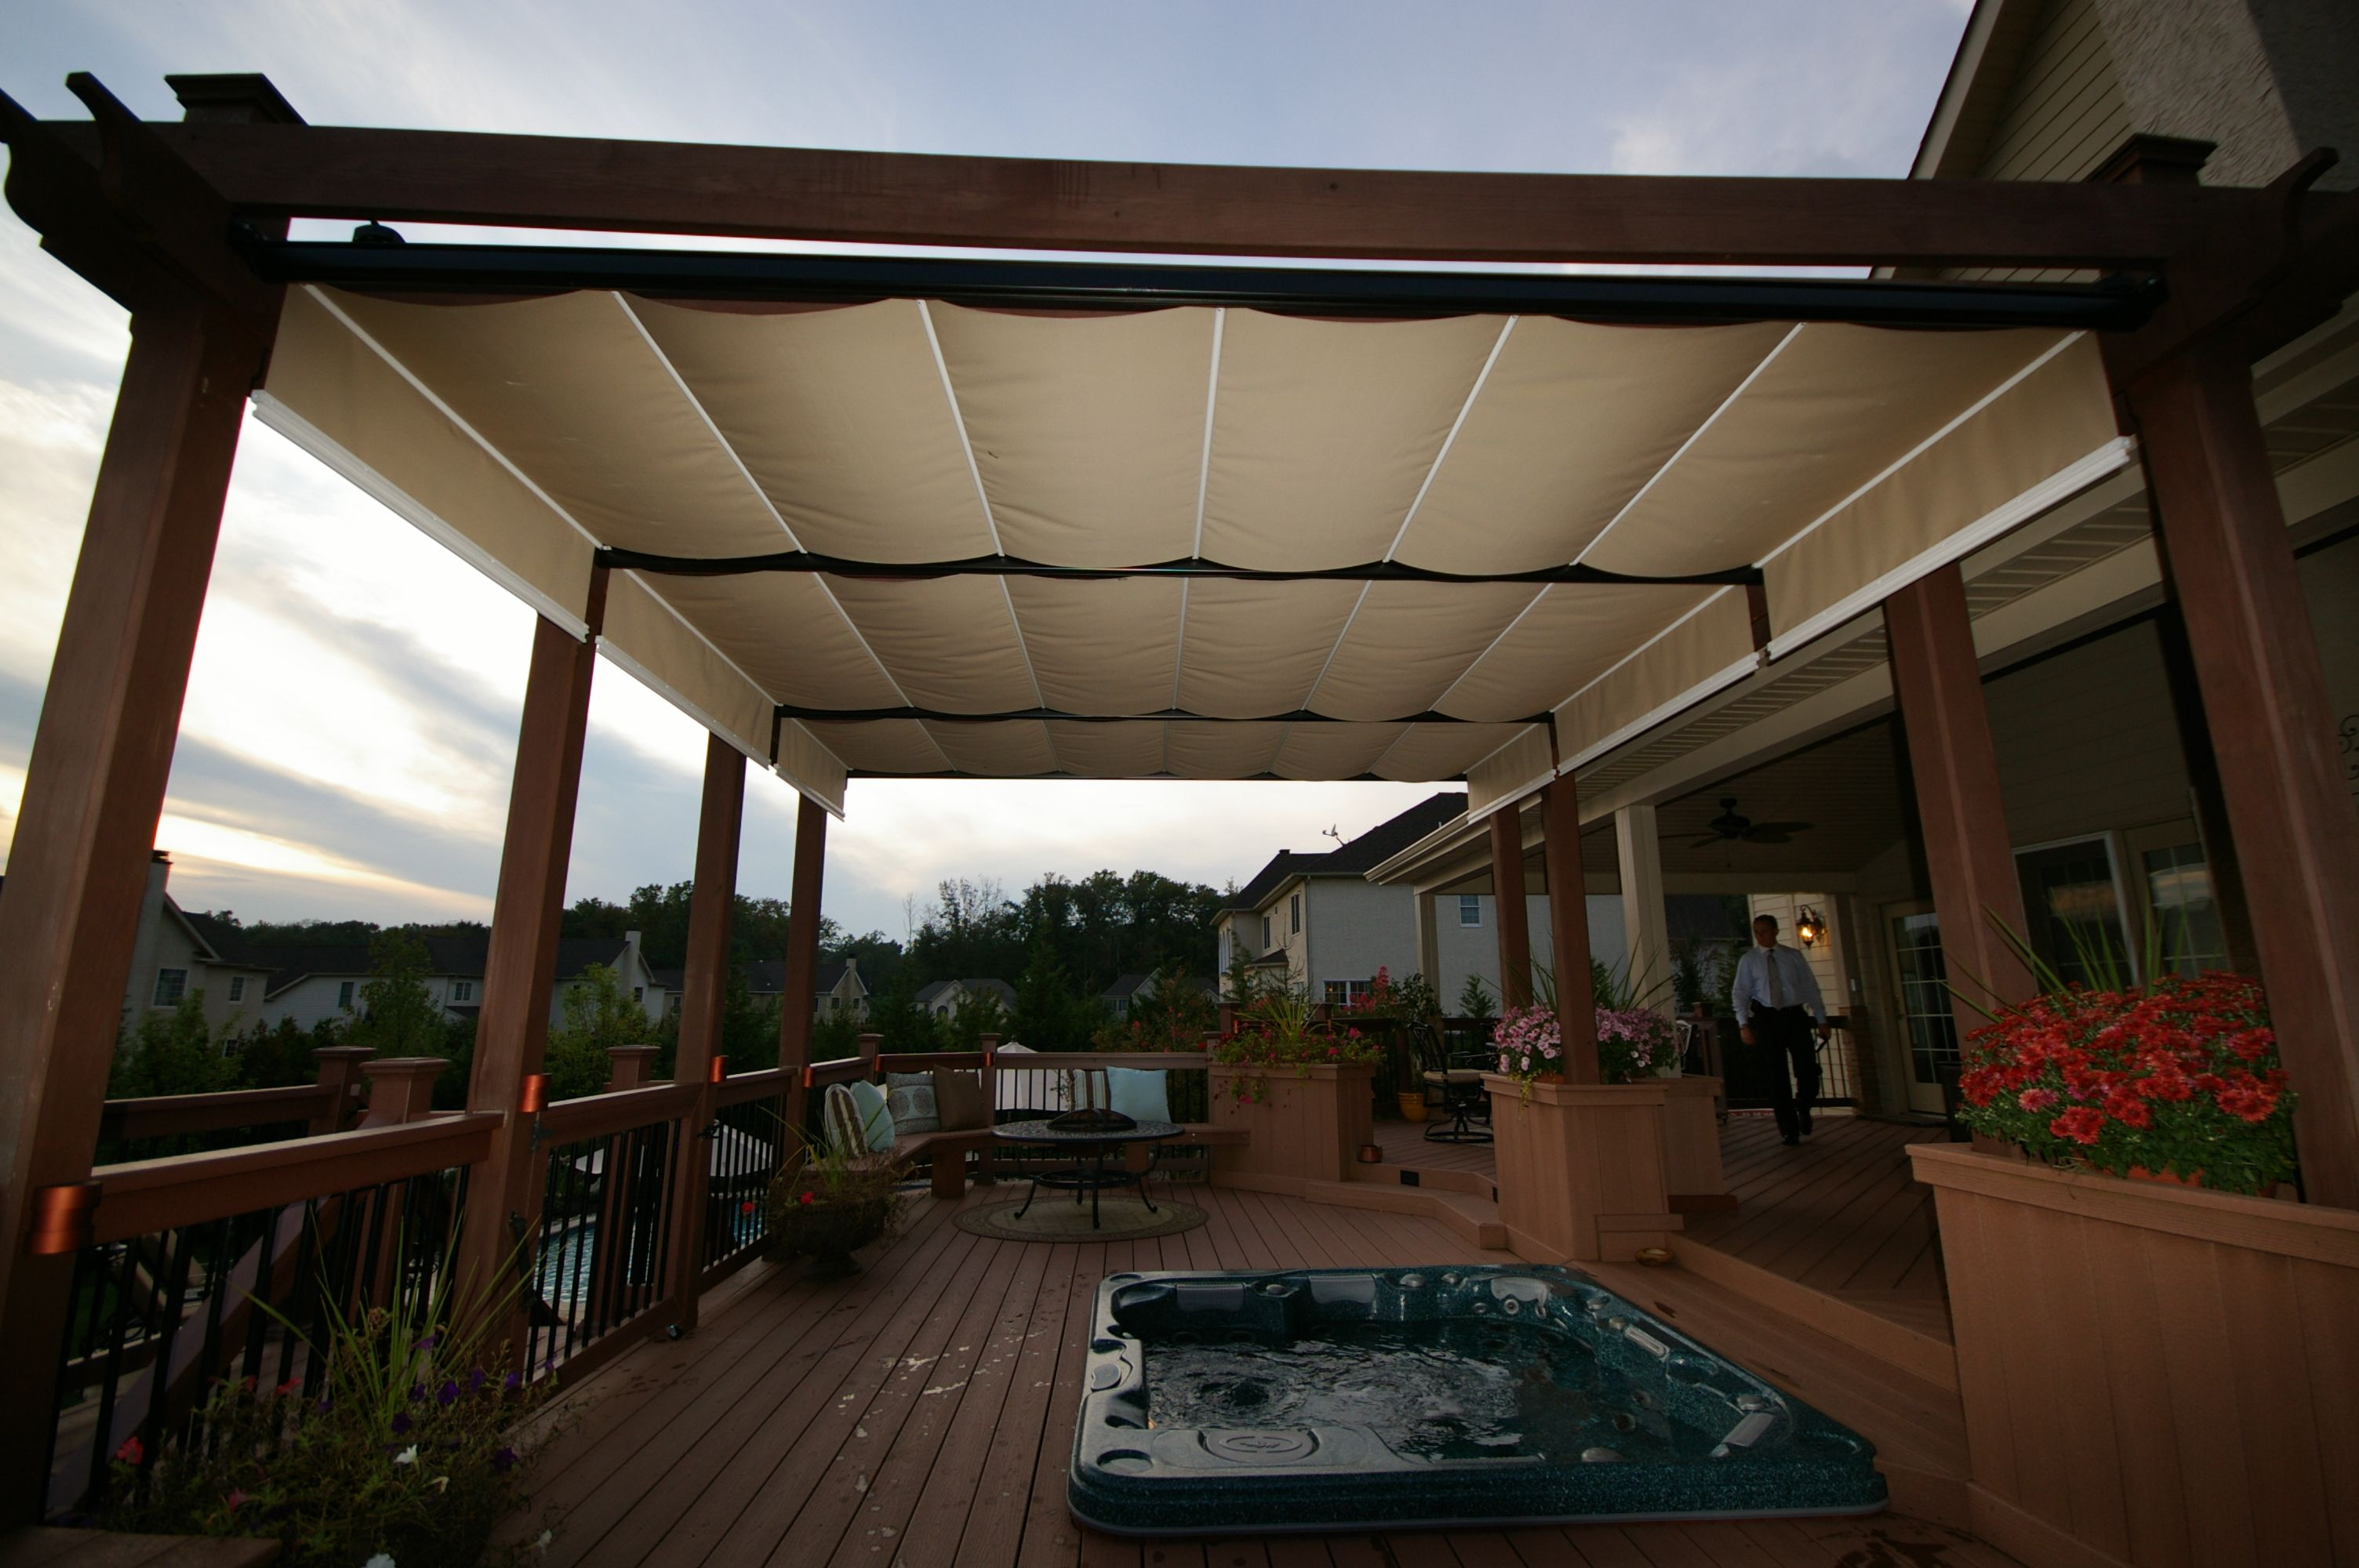 Outdoor Decks For Jacuzzis With Awning Awning Outdoor Decoration Ideas And Styles Marvelous